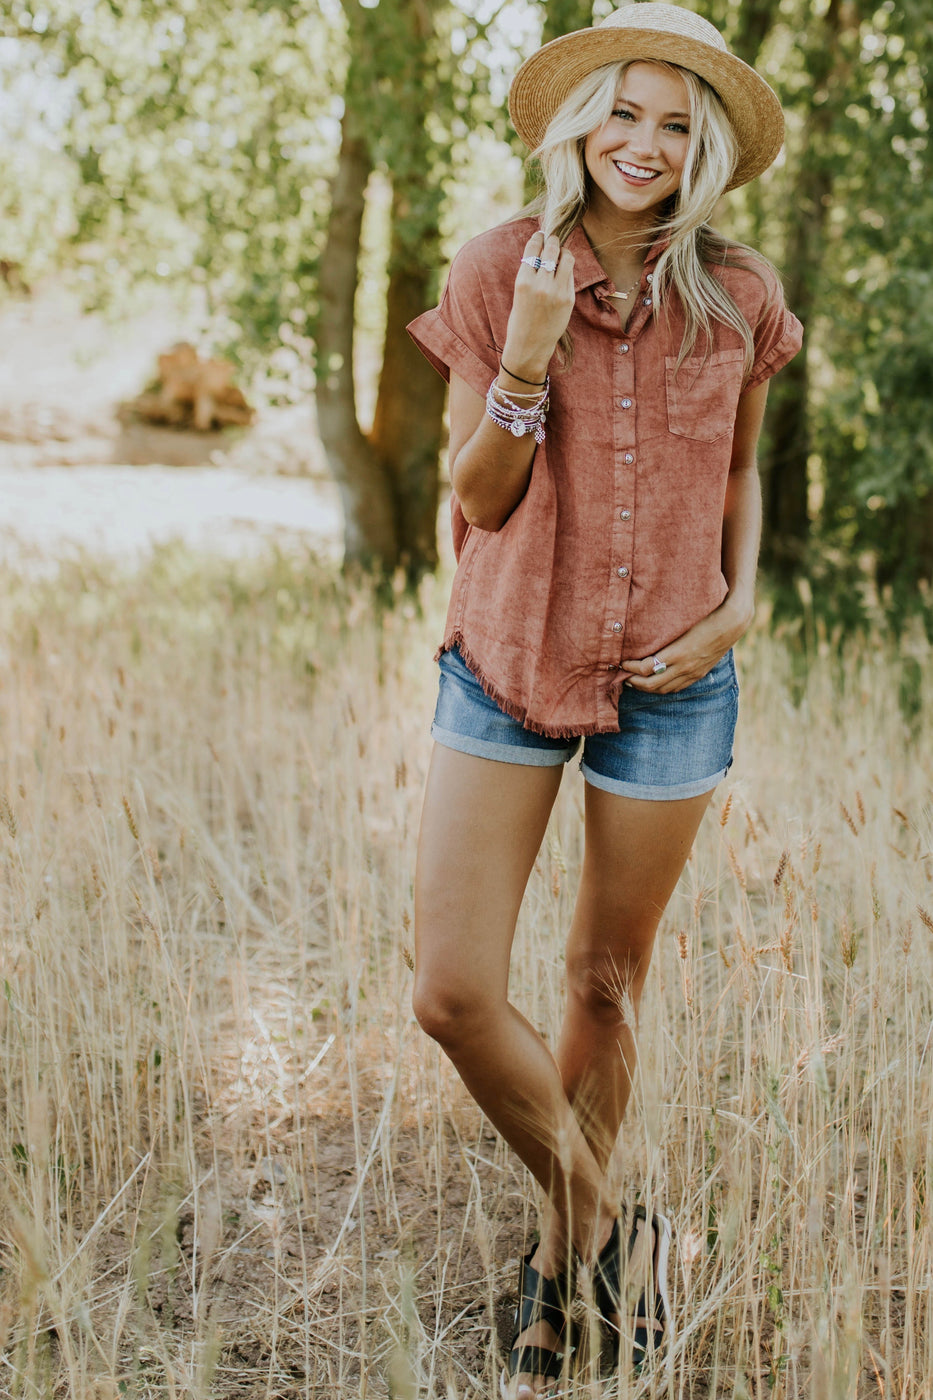 Casual Outfit Ideas For Women | ROOLEE